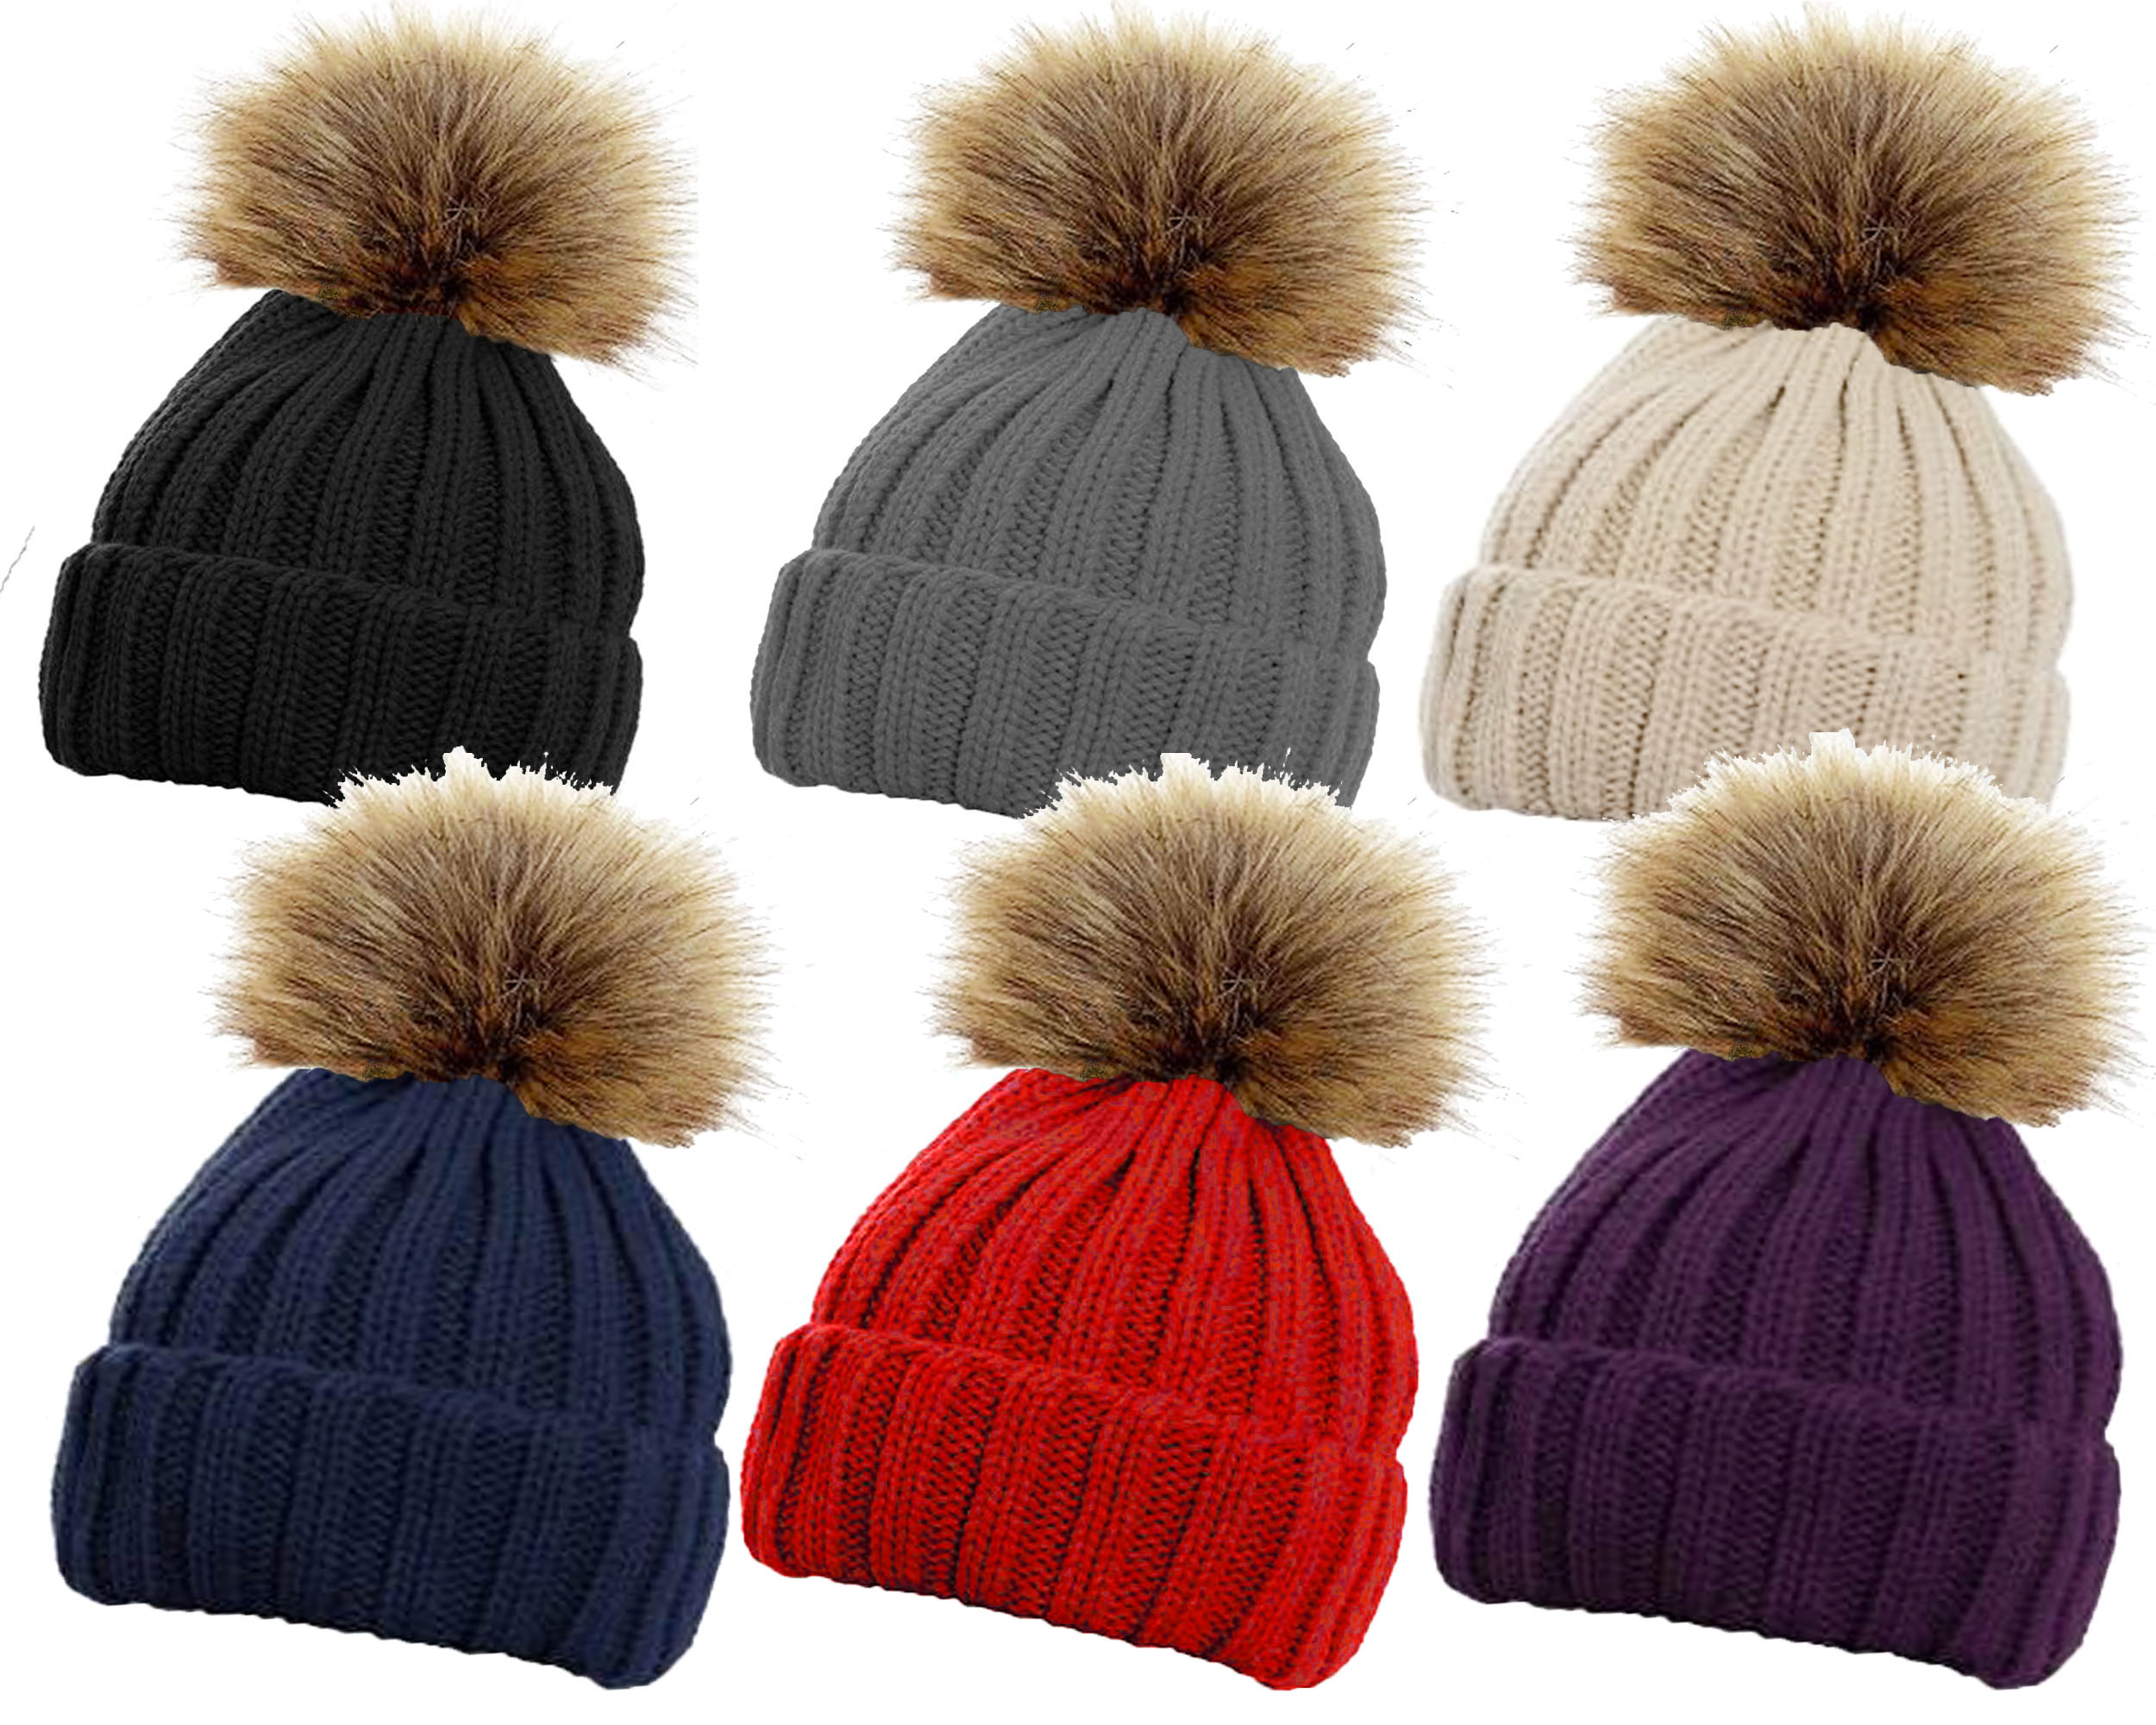 HAi-618 Ladies Ribbed Ski Hat with Large Detachable Faux Fur Pom Pom by  Handy Glove - 99618 f983218f624